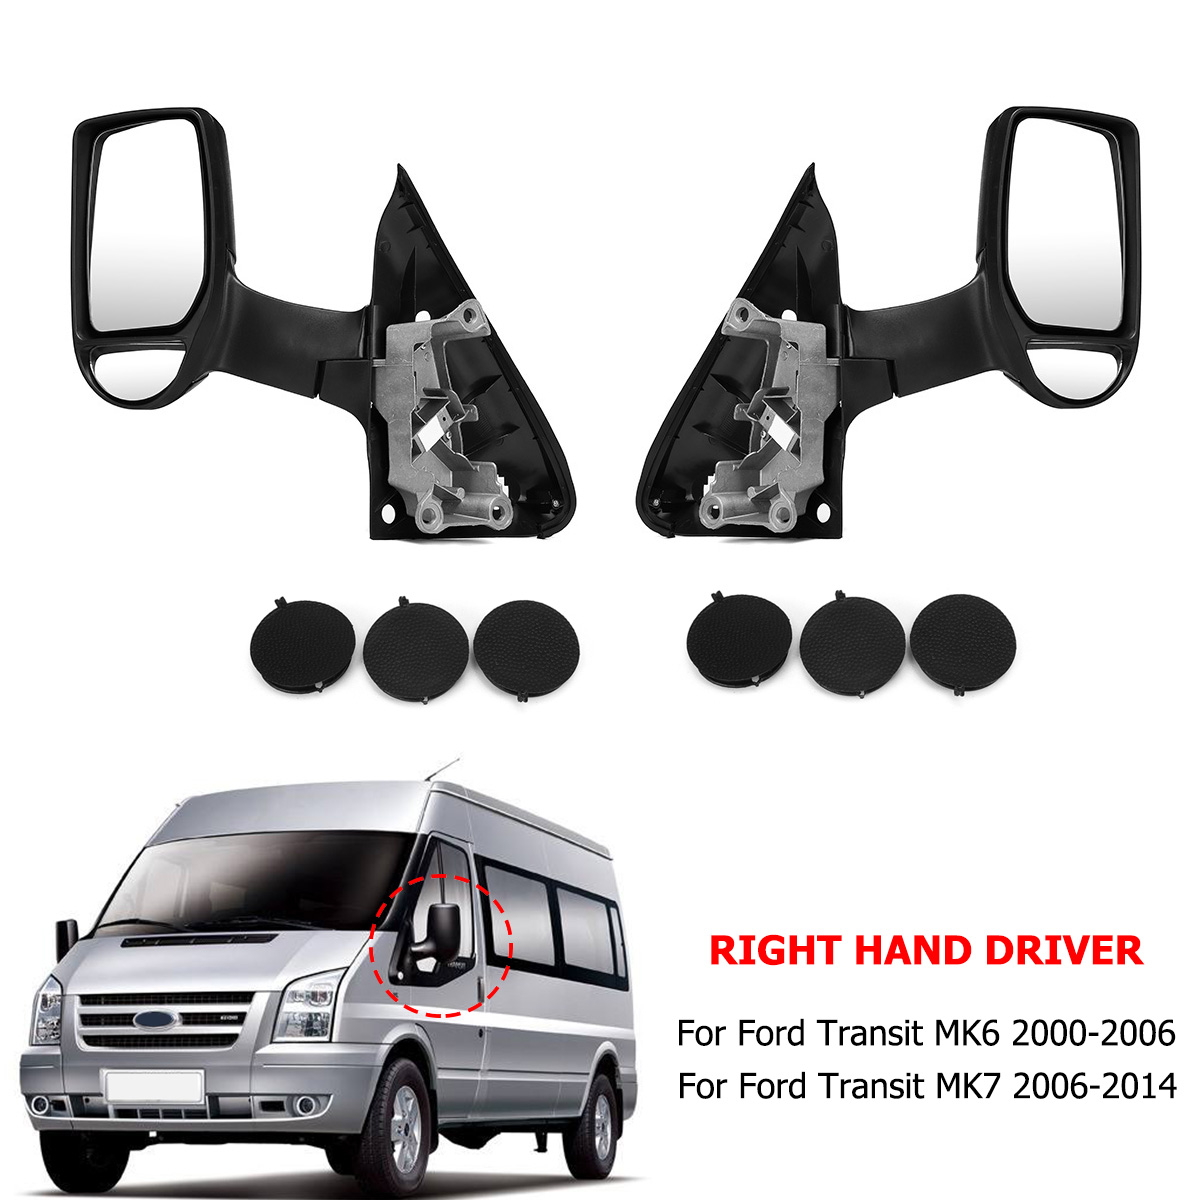 Car Right Wing Mirror Left Wing Mirrors For Ford Transit MK6 MK7 Transit Right Hand Driver Side Long Arm car electric window toggle switch front for ford transit mk6 2000 2006